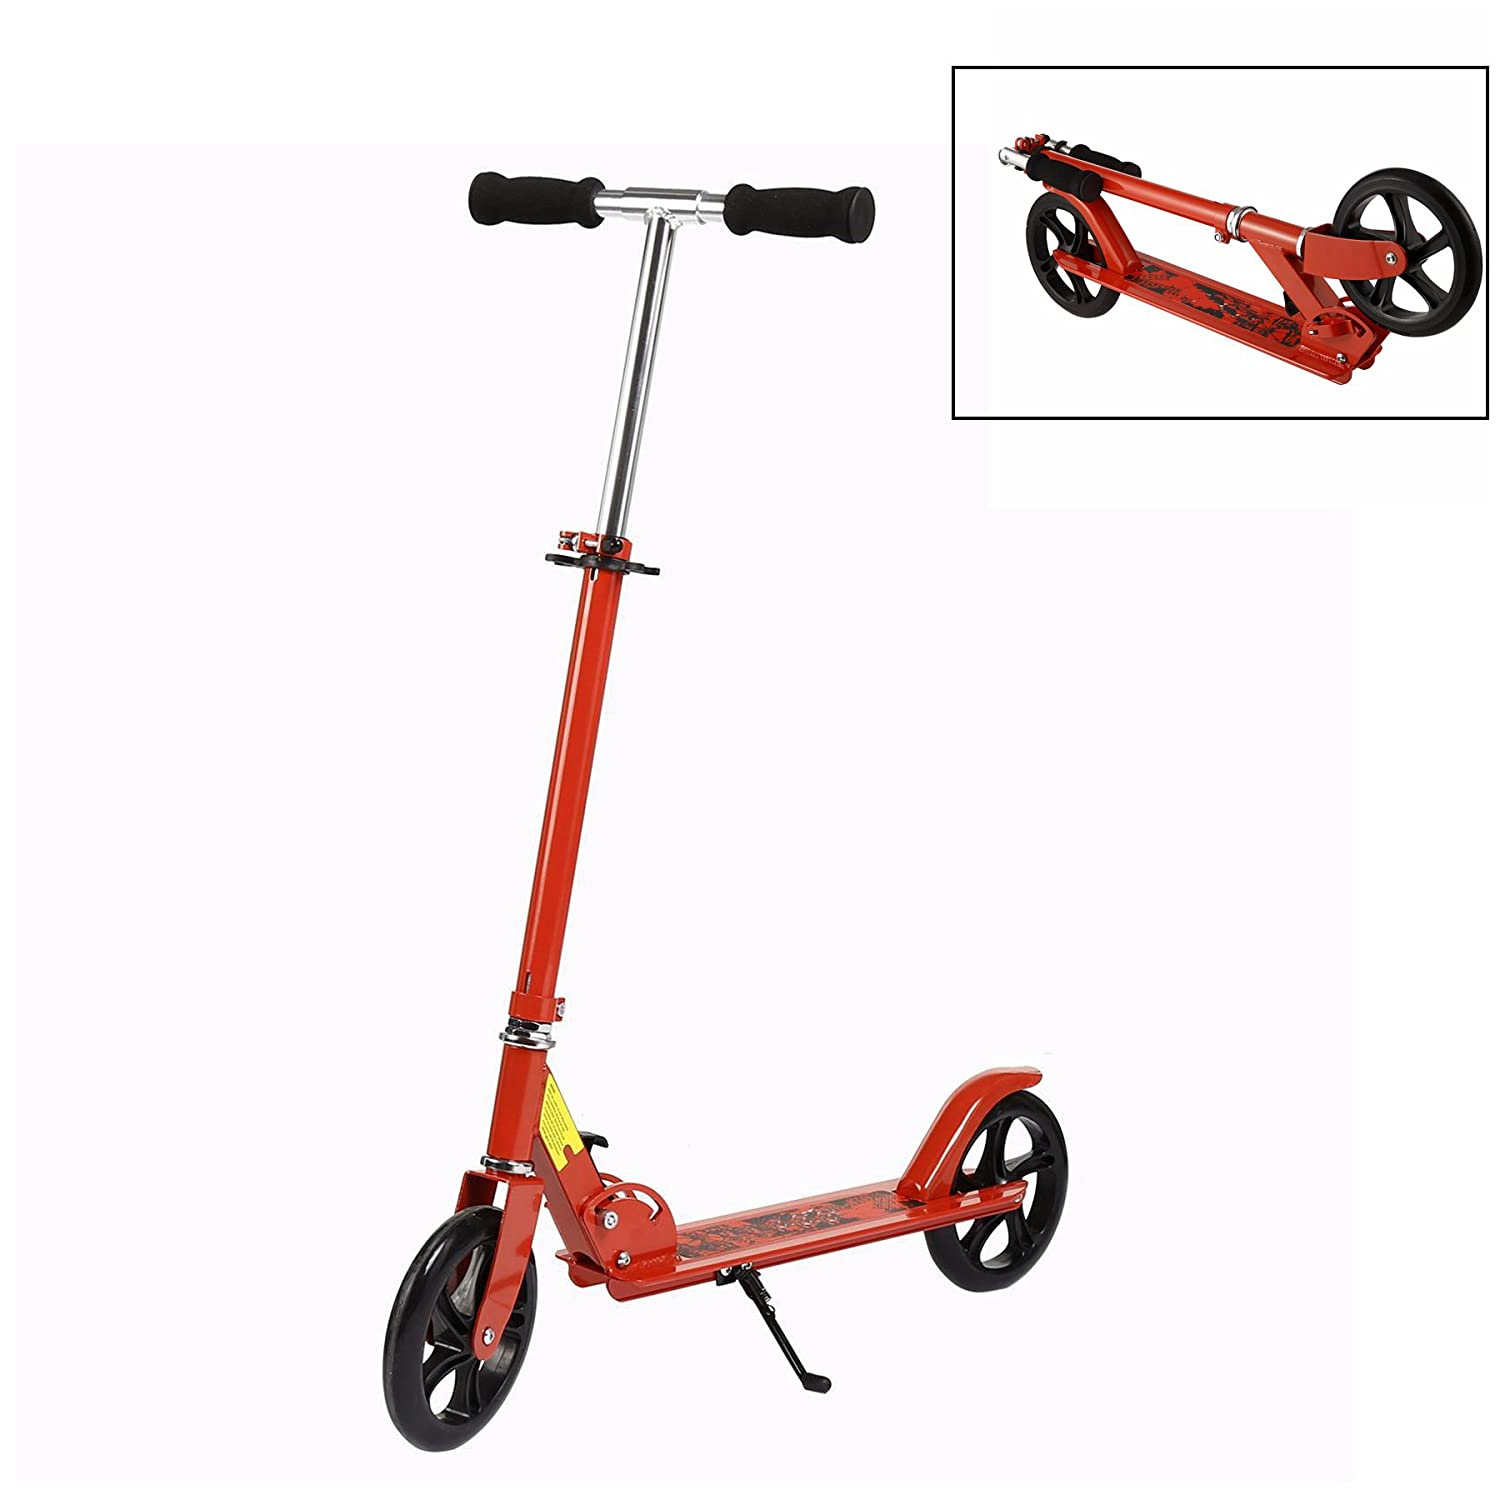 Leoneva Foldable Lightweight Adult Kick Scooter with Adjustable Height, Load Capacity 198.2lbs